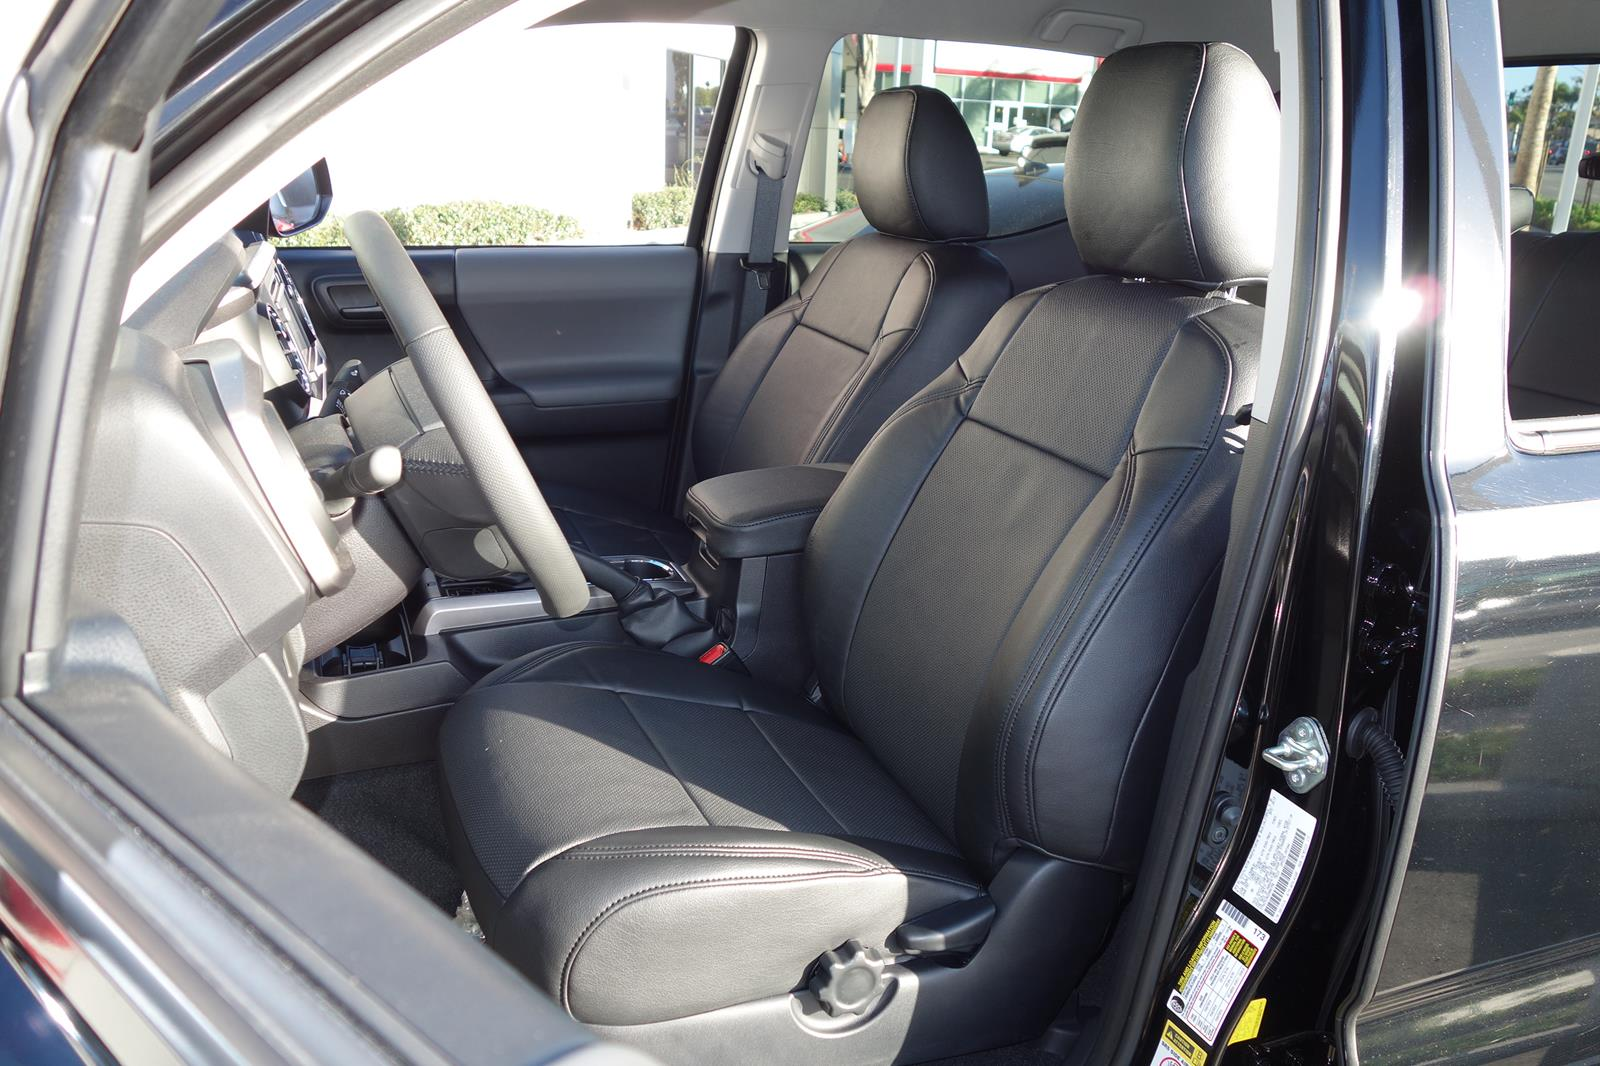 2016 Tacoma Clazzio Seat Covers Clazzio Leather Seat Covers